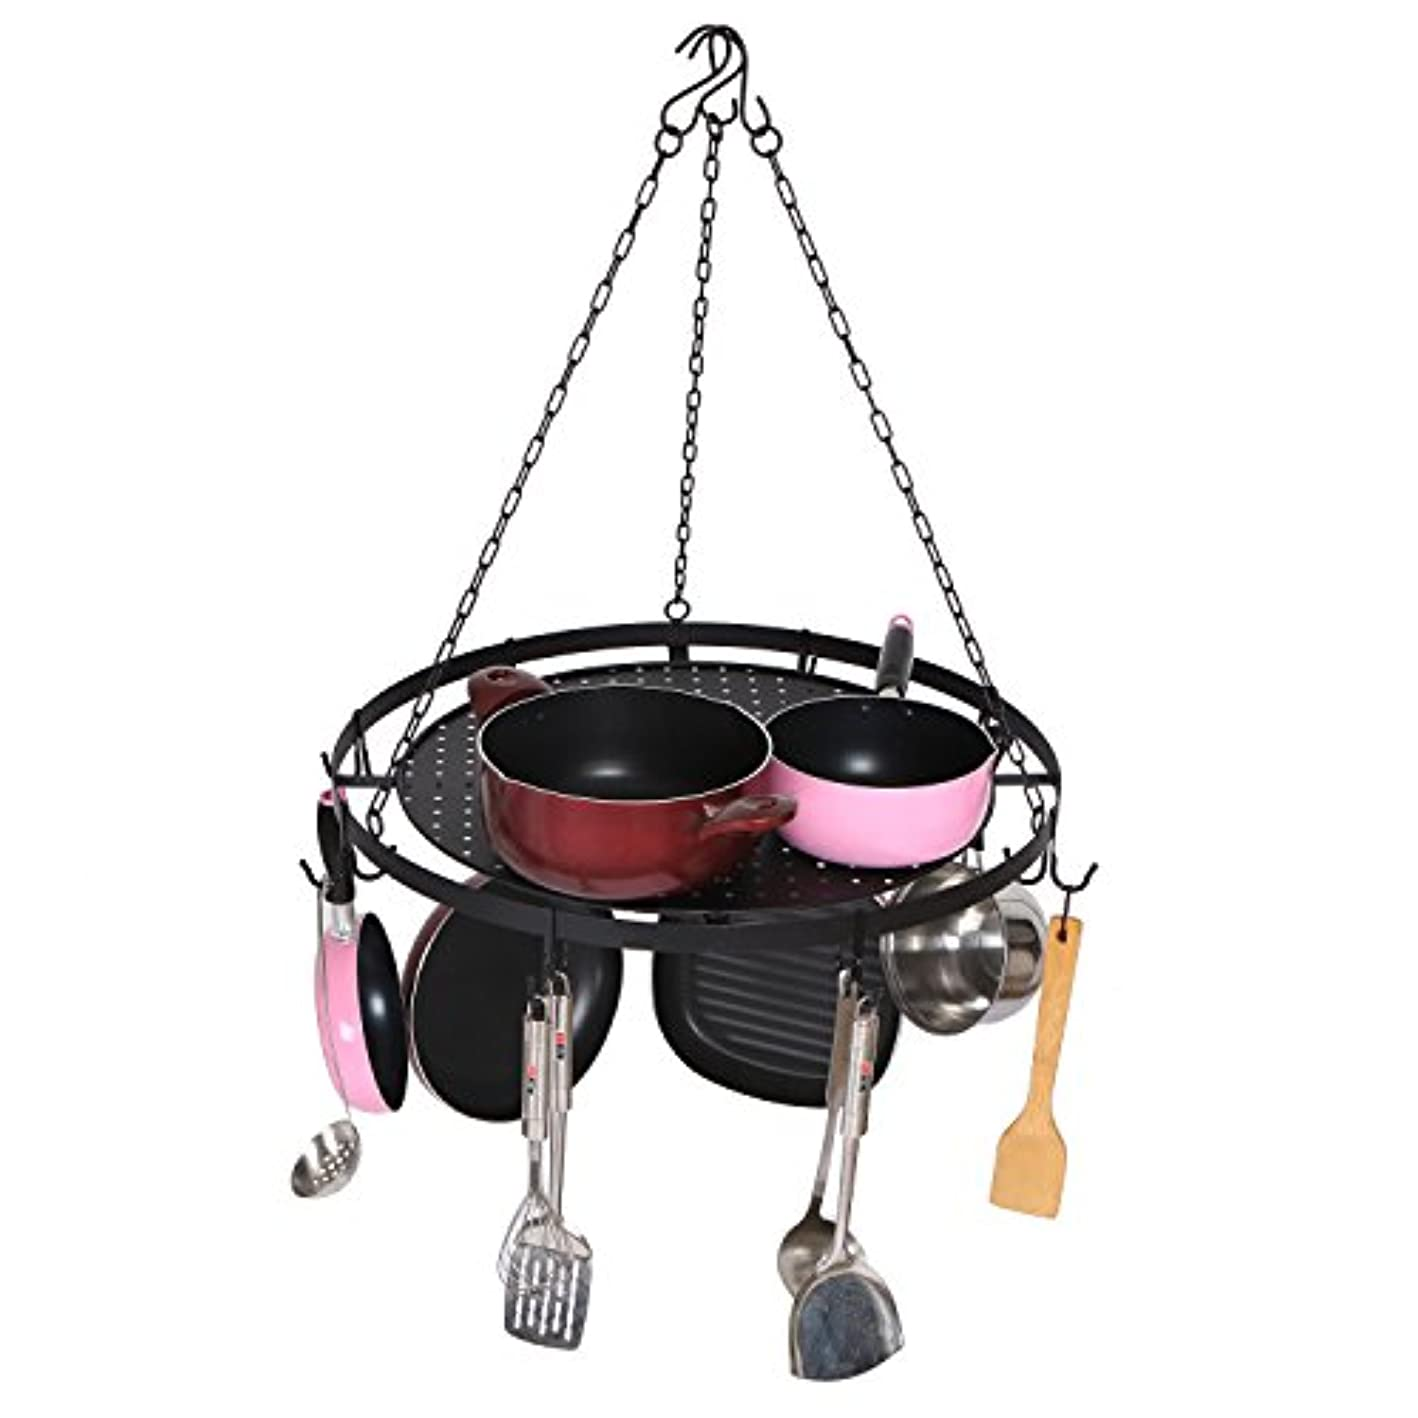 Round Ceiling Mounted Hanging Metal Kitchen Pots and Pans Rack with 7 Removable Hooks, Black